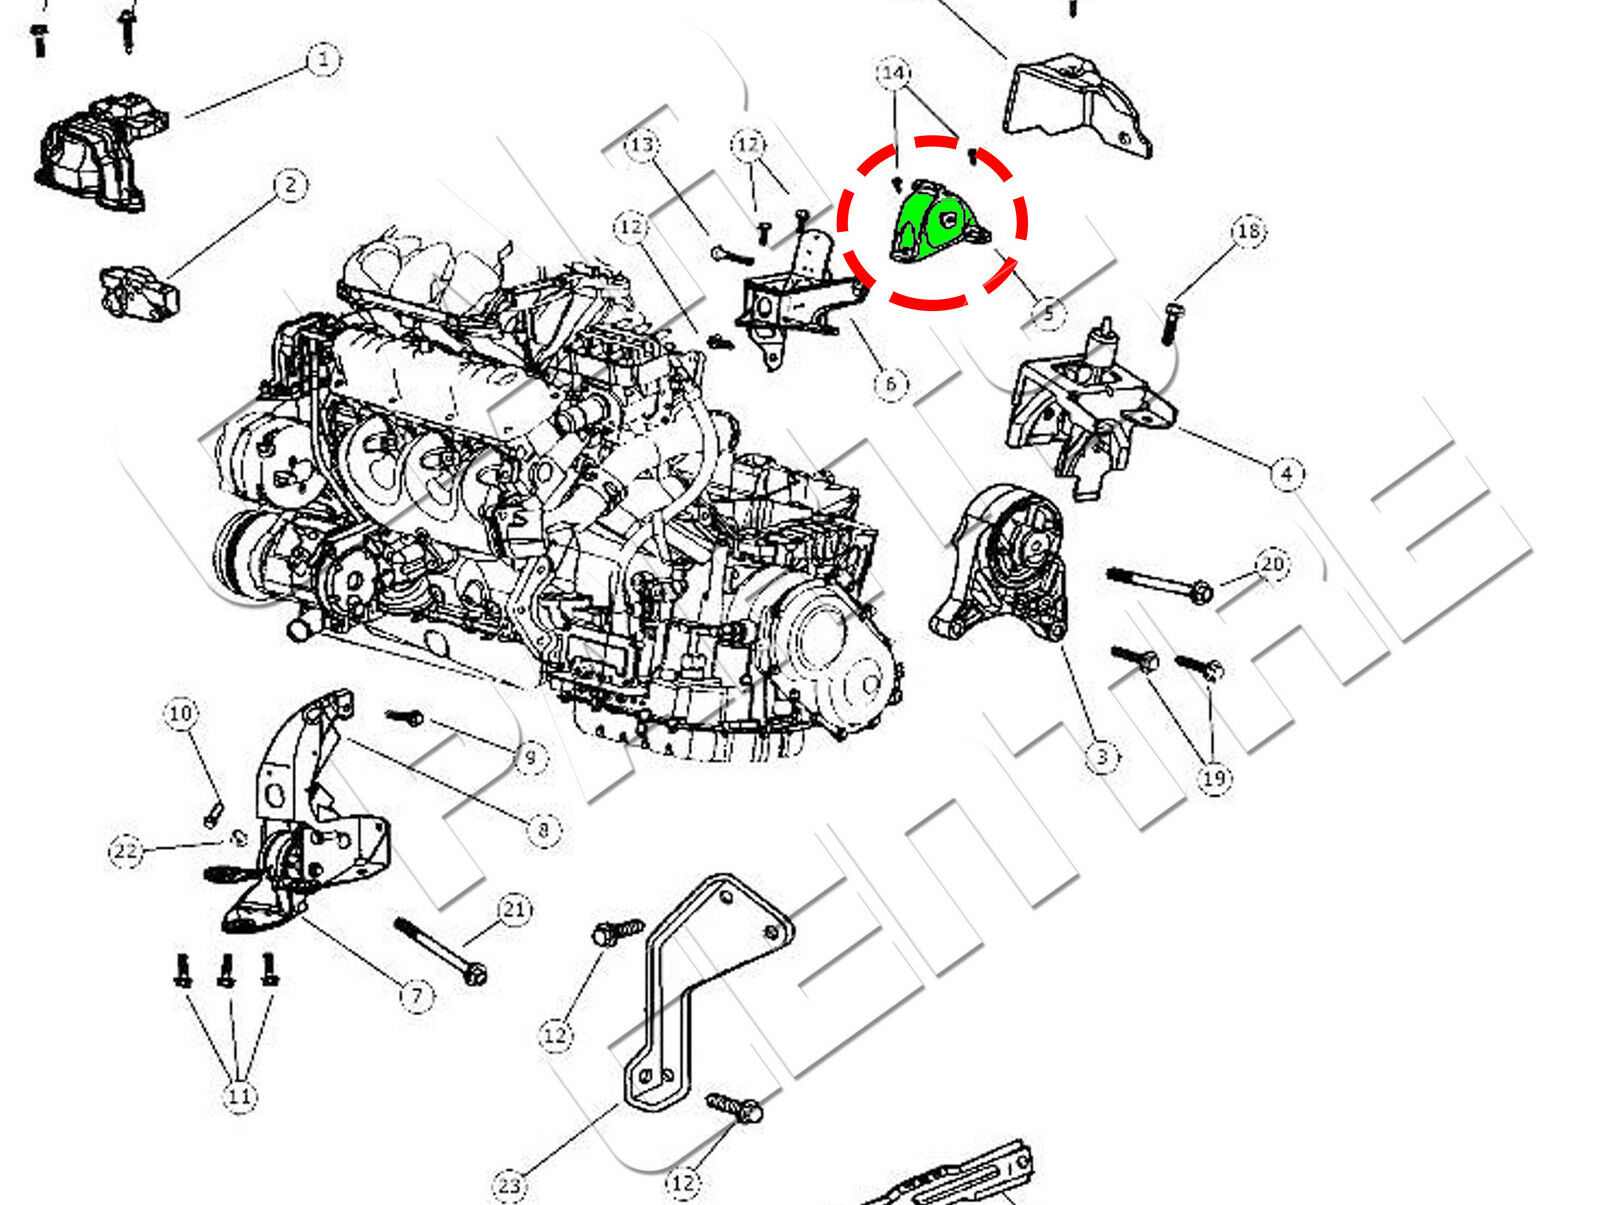 chrysler 3 8 litre engine diagram  u2022 wiring diagram for free